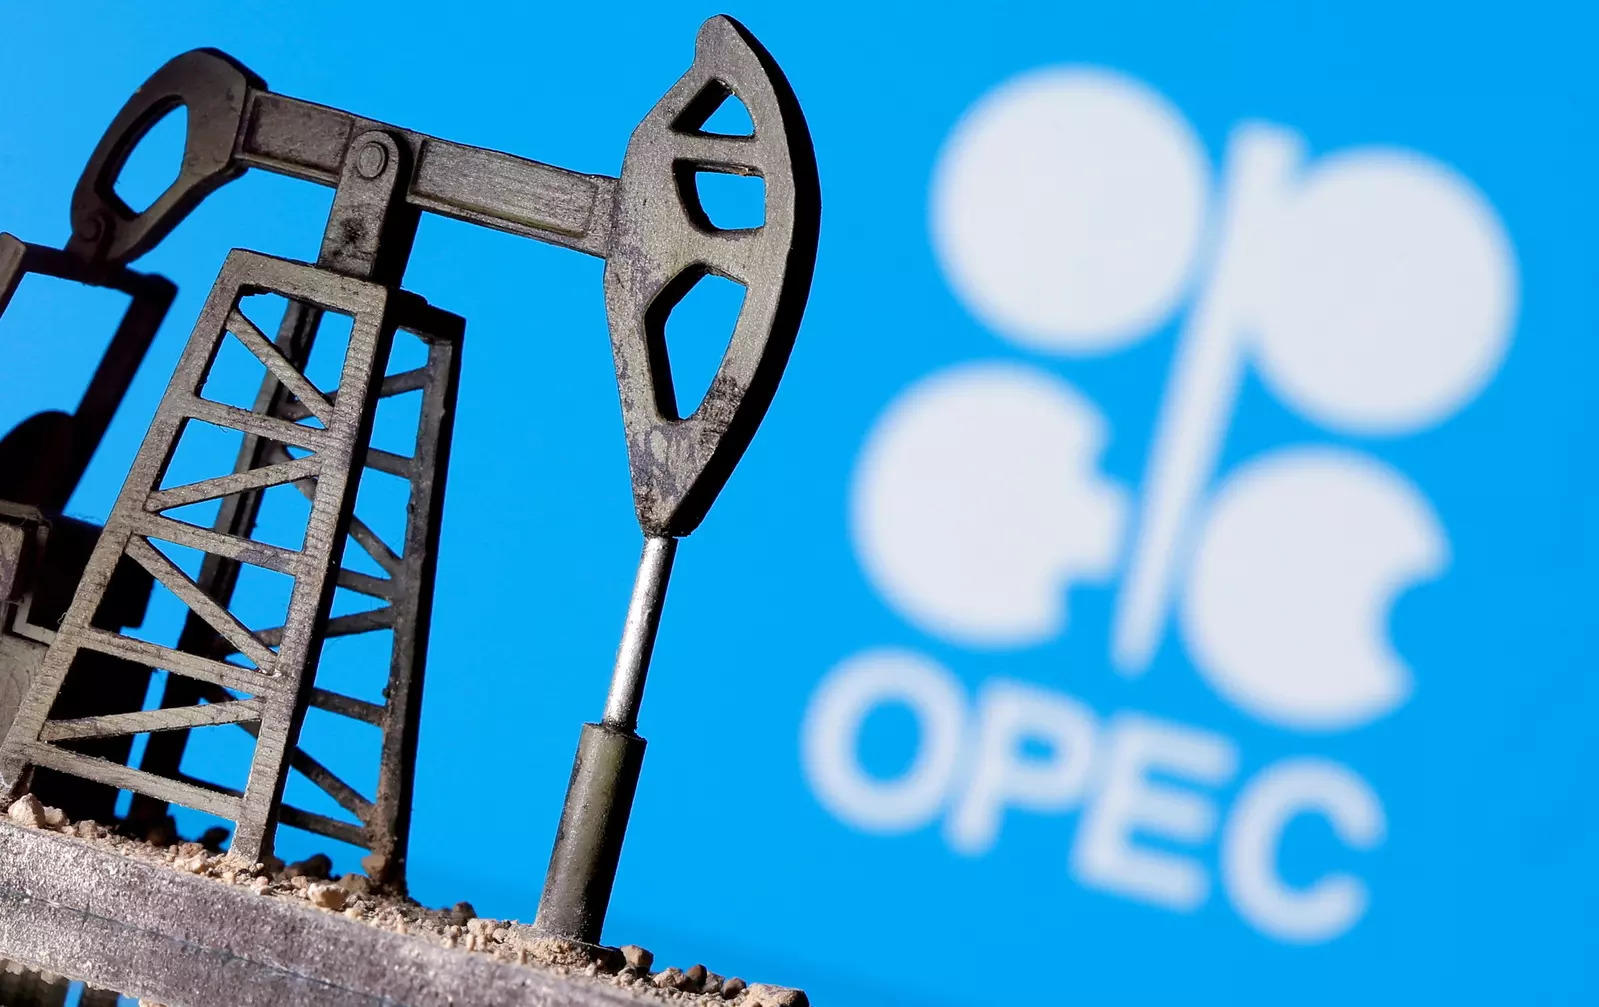 OPEC says NOPEC bill could put U.S. overseas assets, personnel at risk